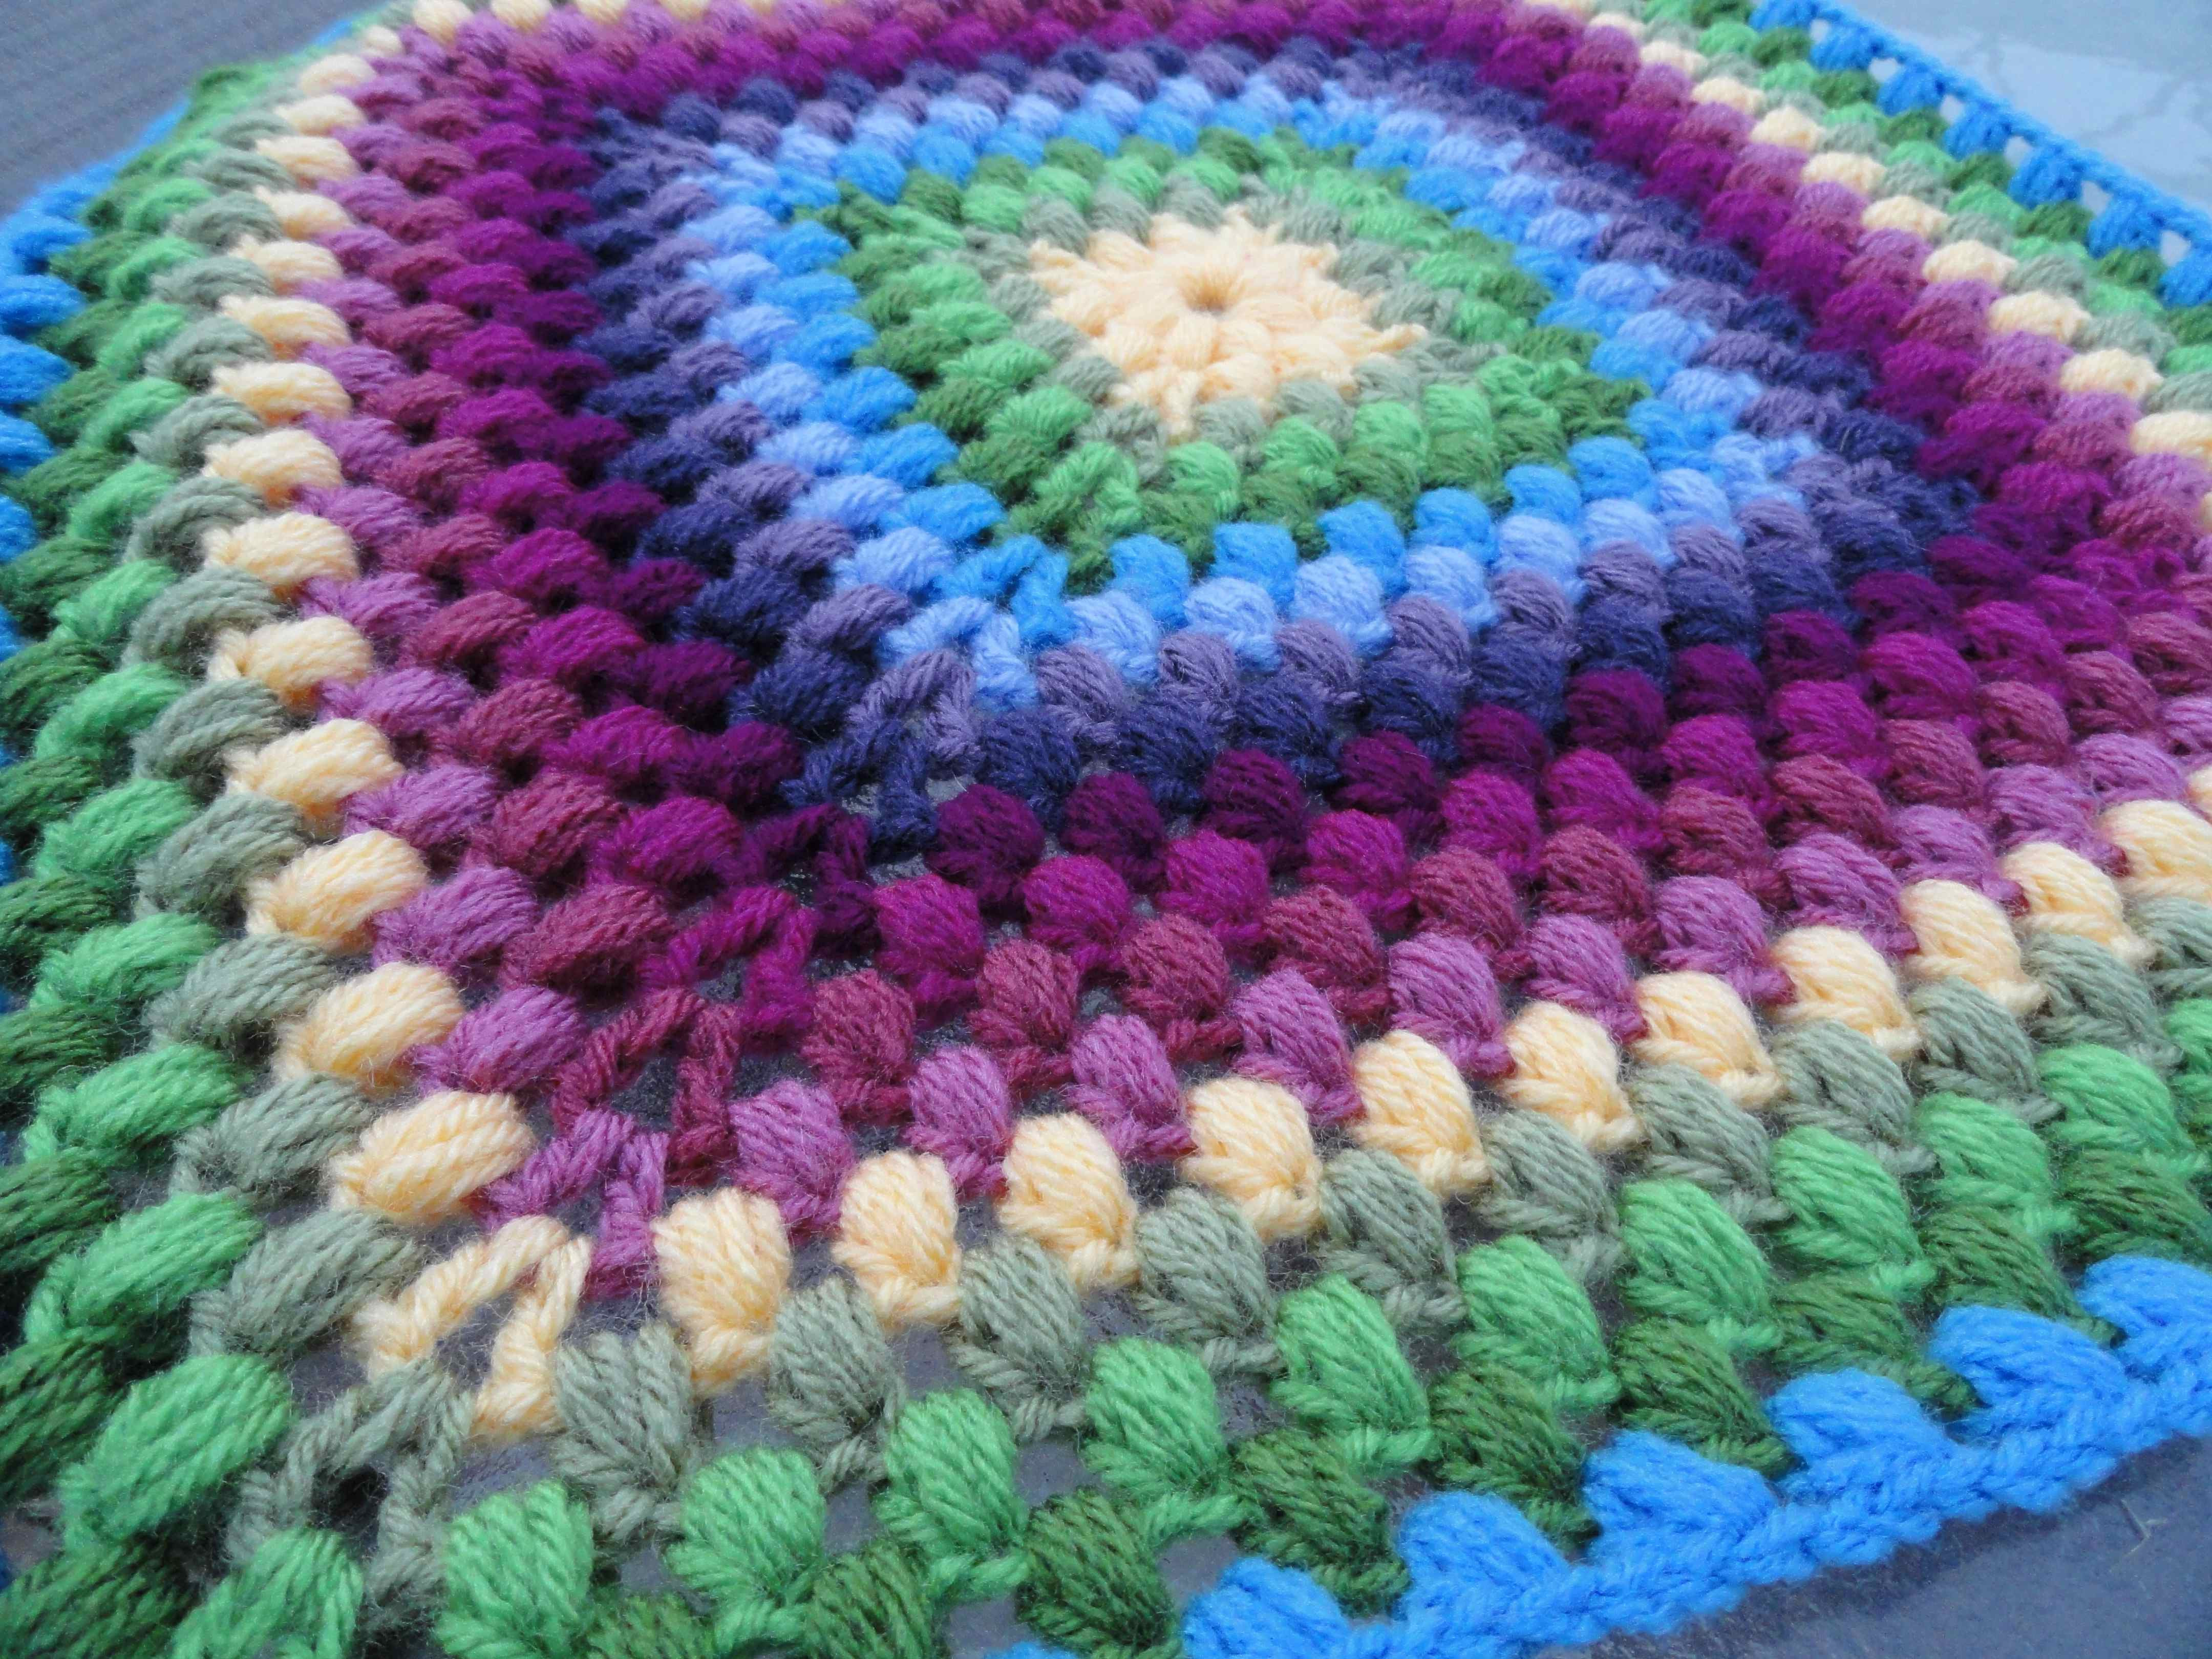 Granny Square Afghan Lovely Crochet Hawaiian Granny Square Pattern – Yarnchick Of Adorable 50 Pics Granny Square Afghan